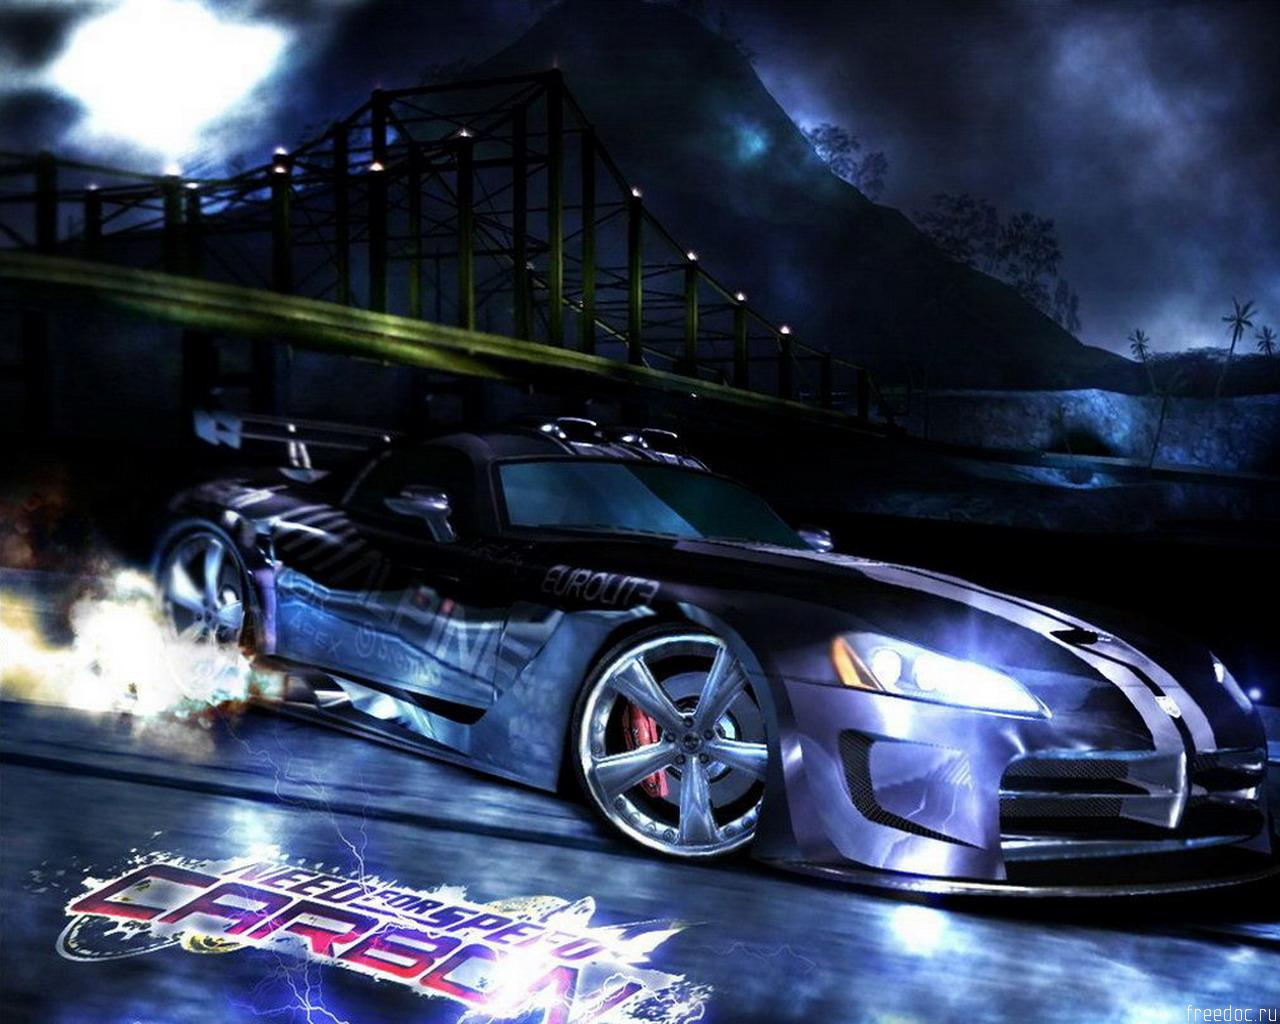 Need for speed Carbon - Wallpaper game play